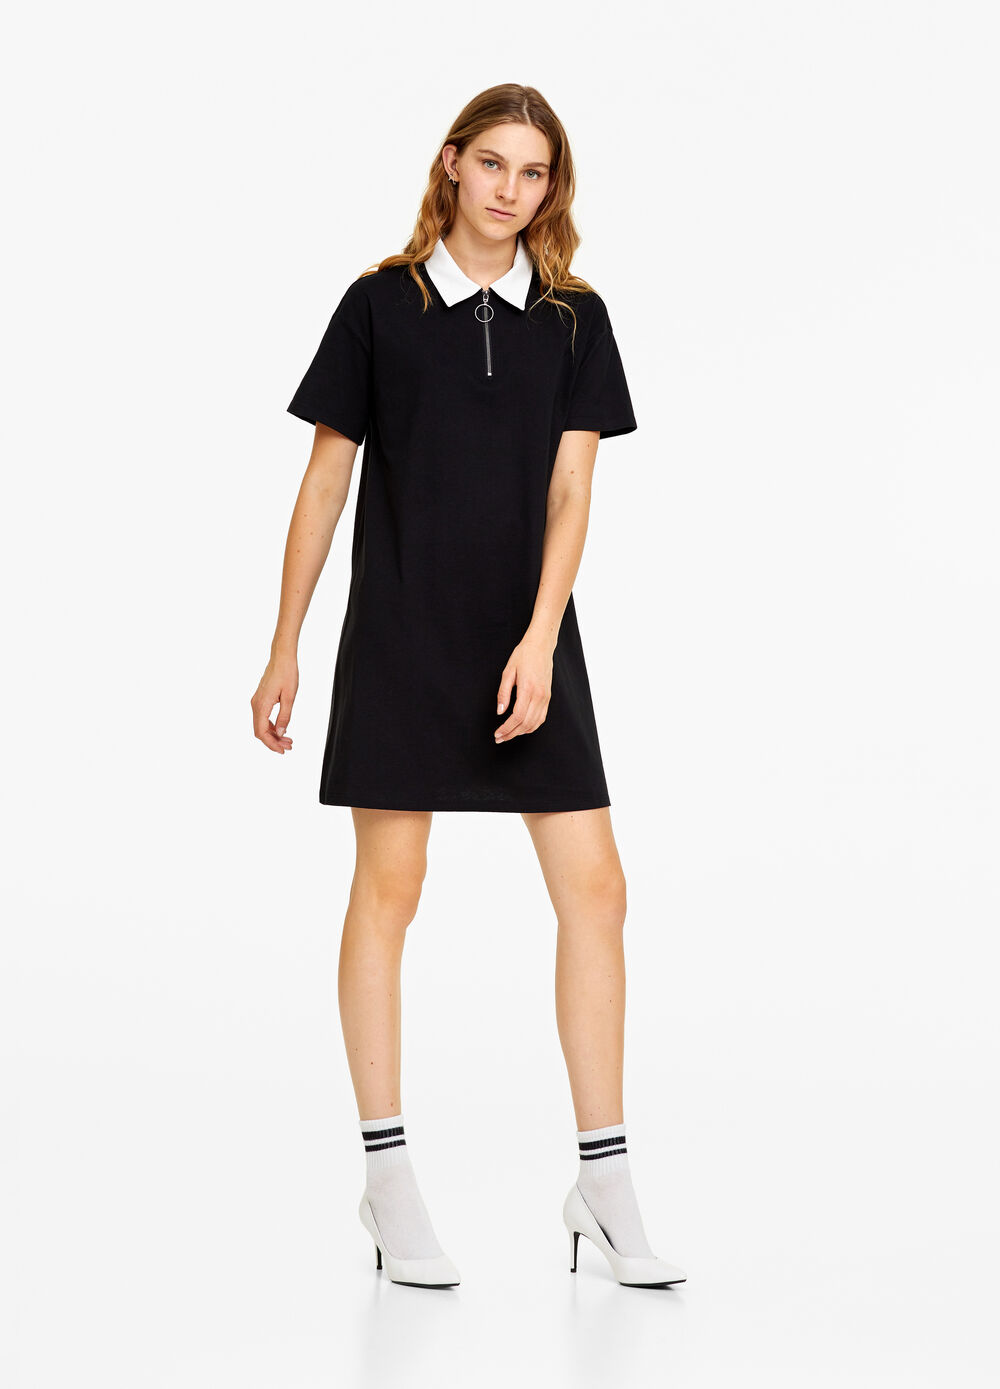 100% cotton dress with collar